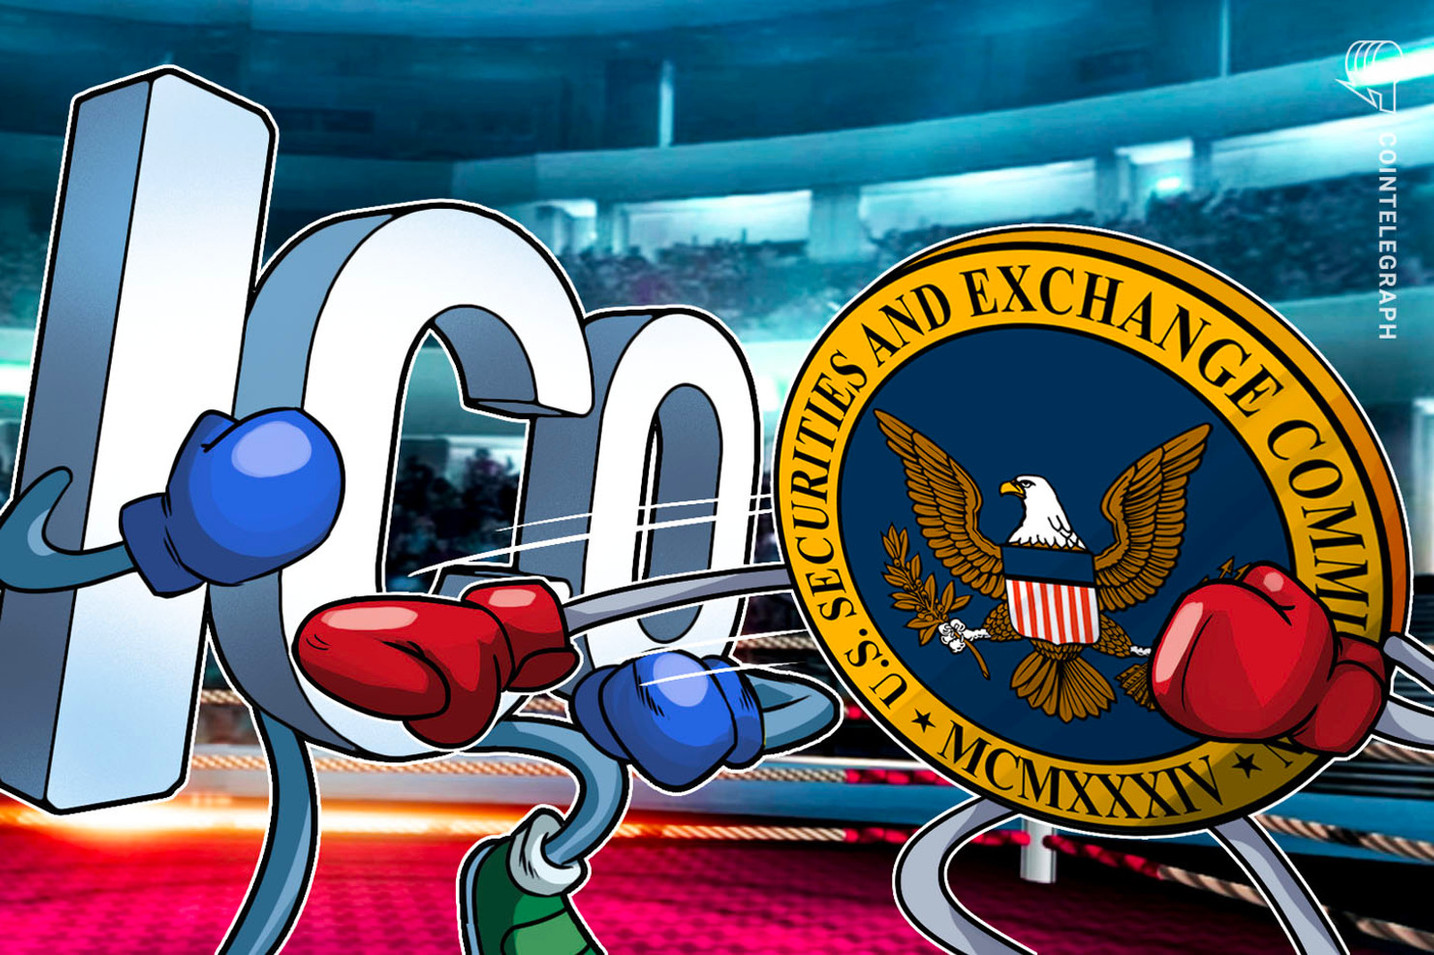 Govt. Pauses SEC Suit Against $30 Mln ICO Amid Parallel Investigation Concerns